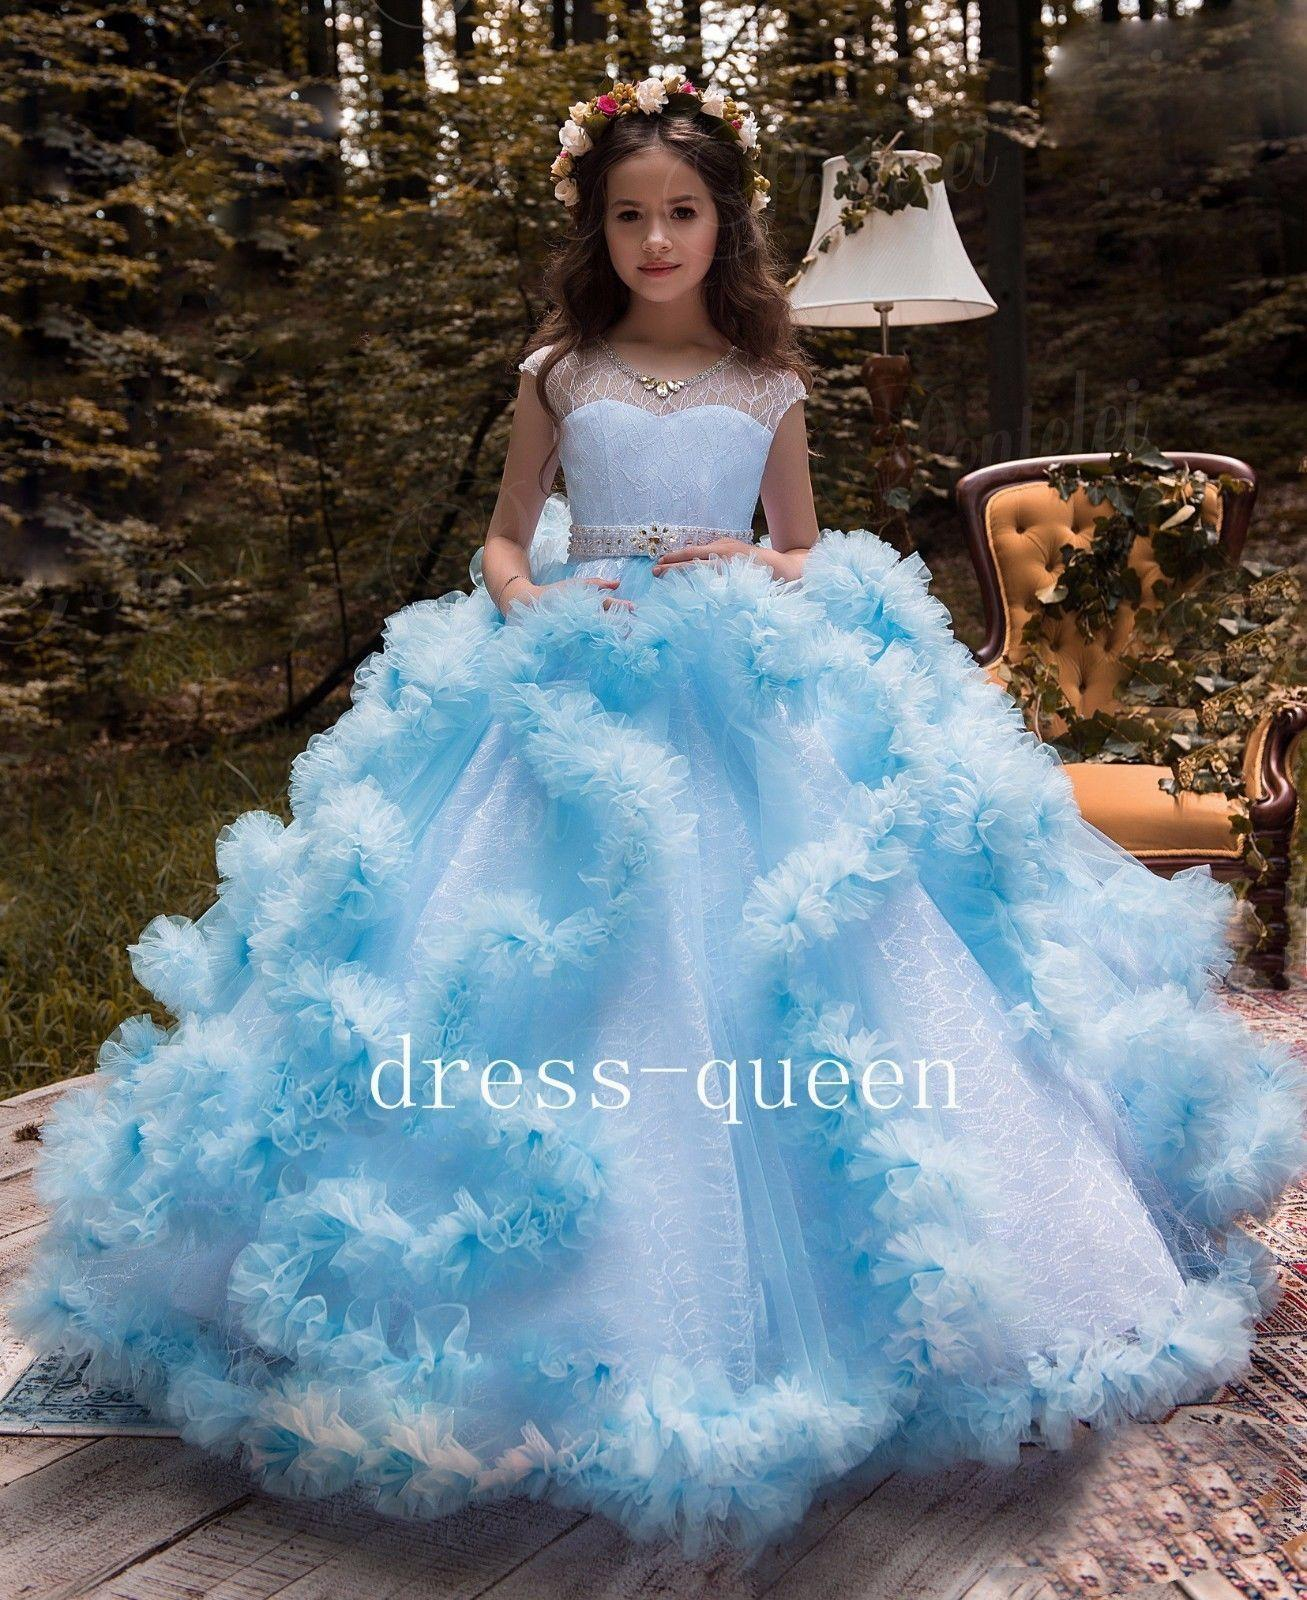 2558ce11b Pageant Kids Gown Ruffle Sky Blue Tulle Flower Girl Dresses For ...